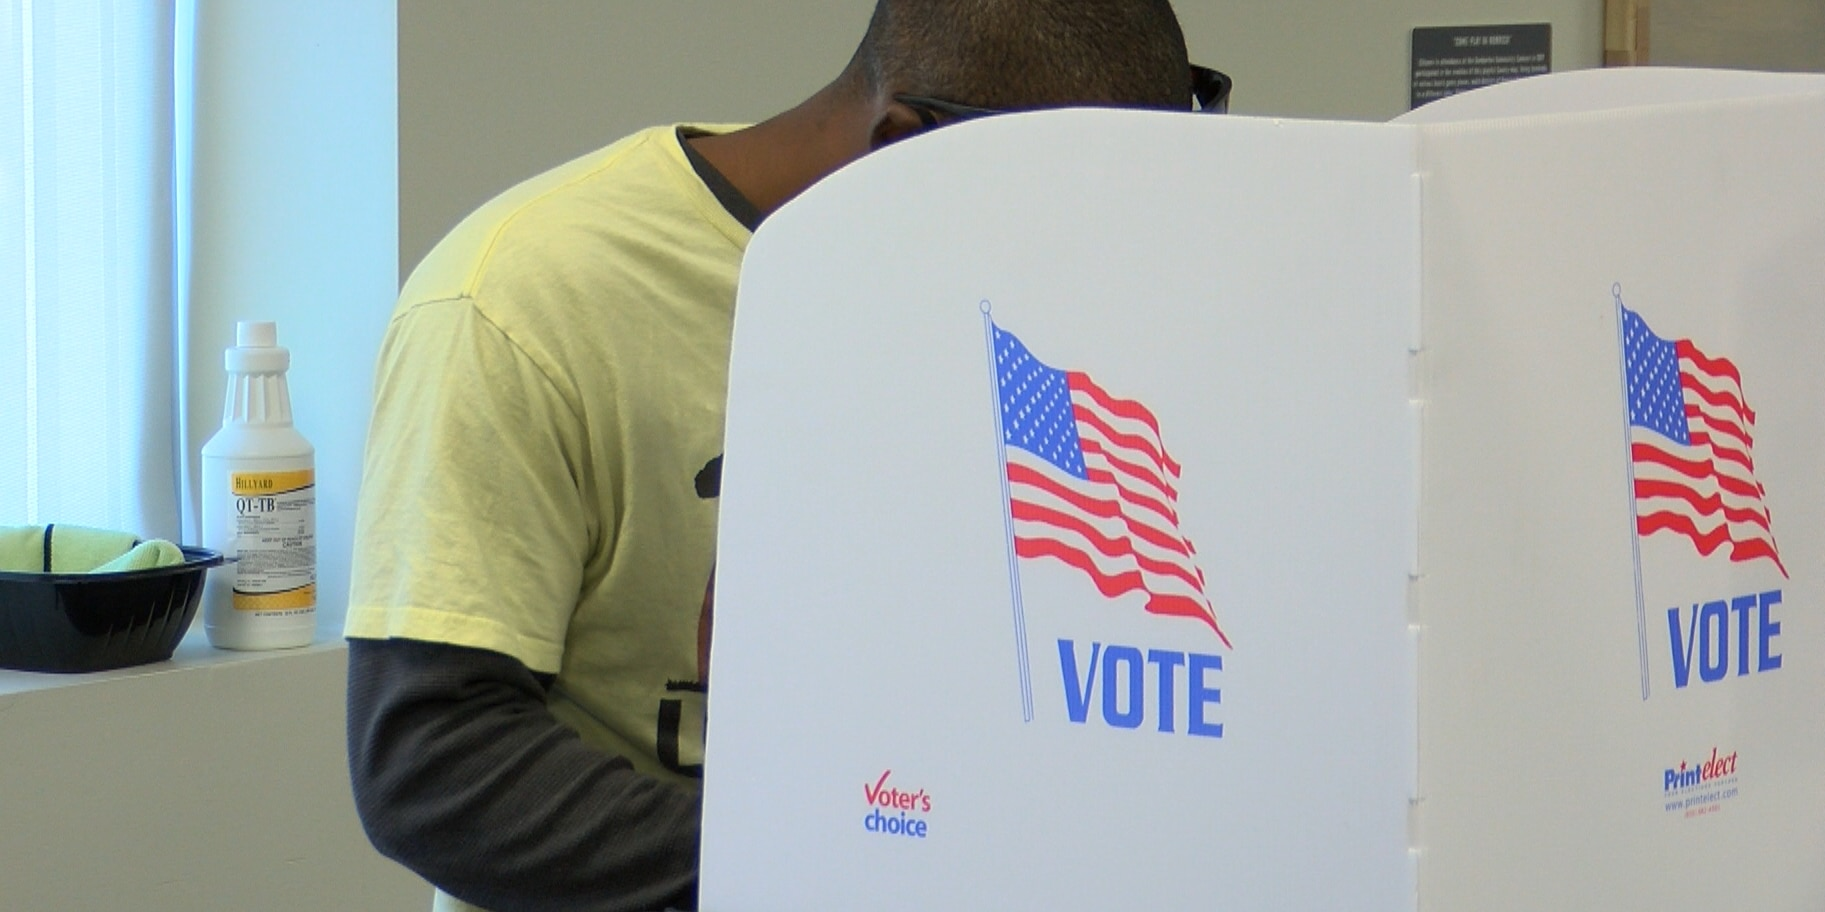 Tens of thousands of voters cast ballots on Election Day in Metro Richmond